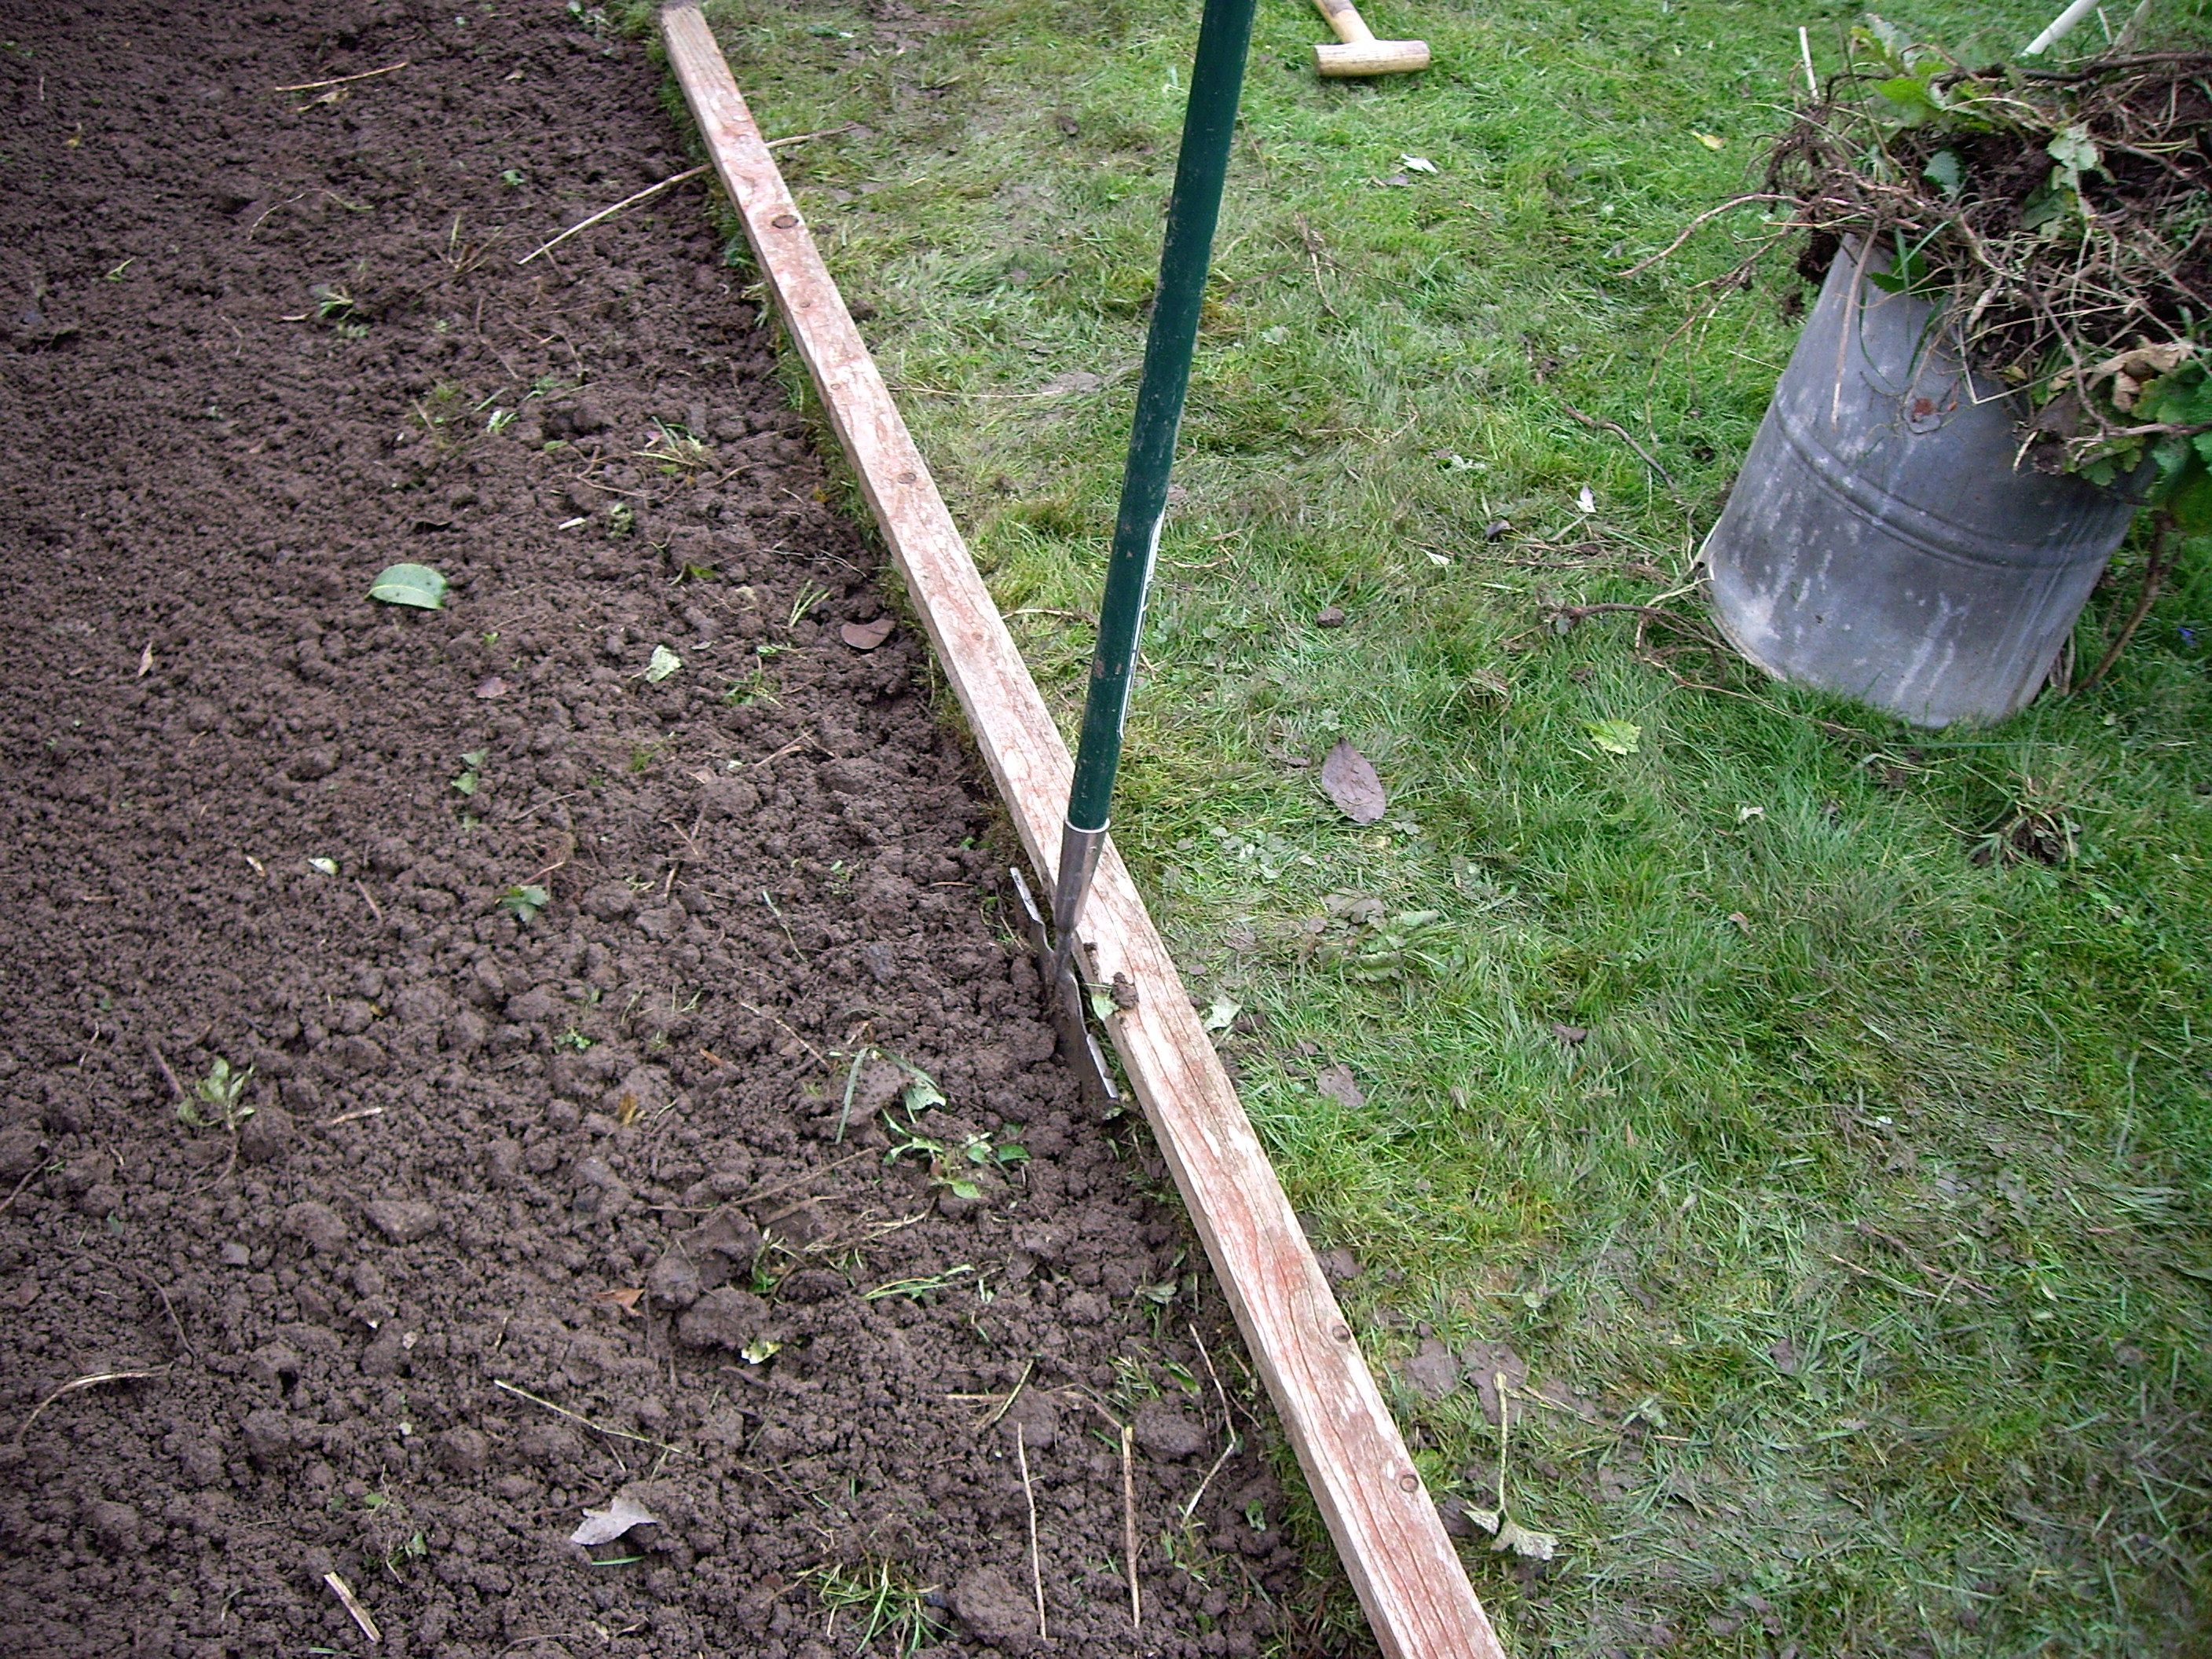 A half moon lawn edger is the ideal tool for this operation but a